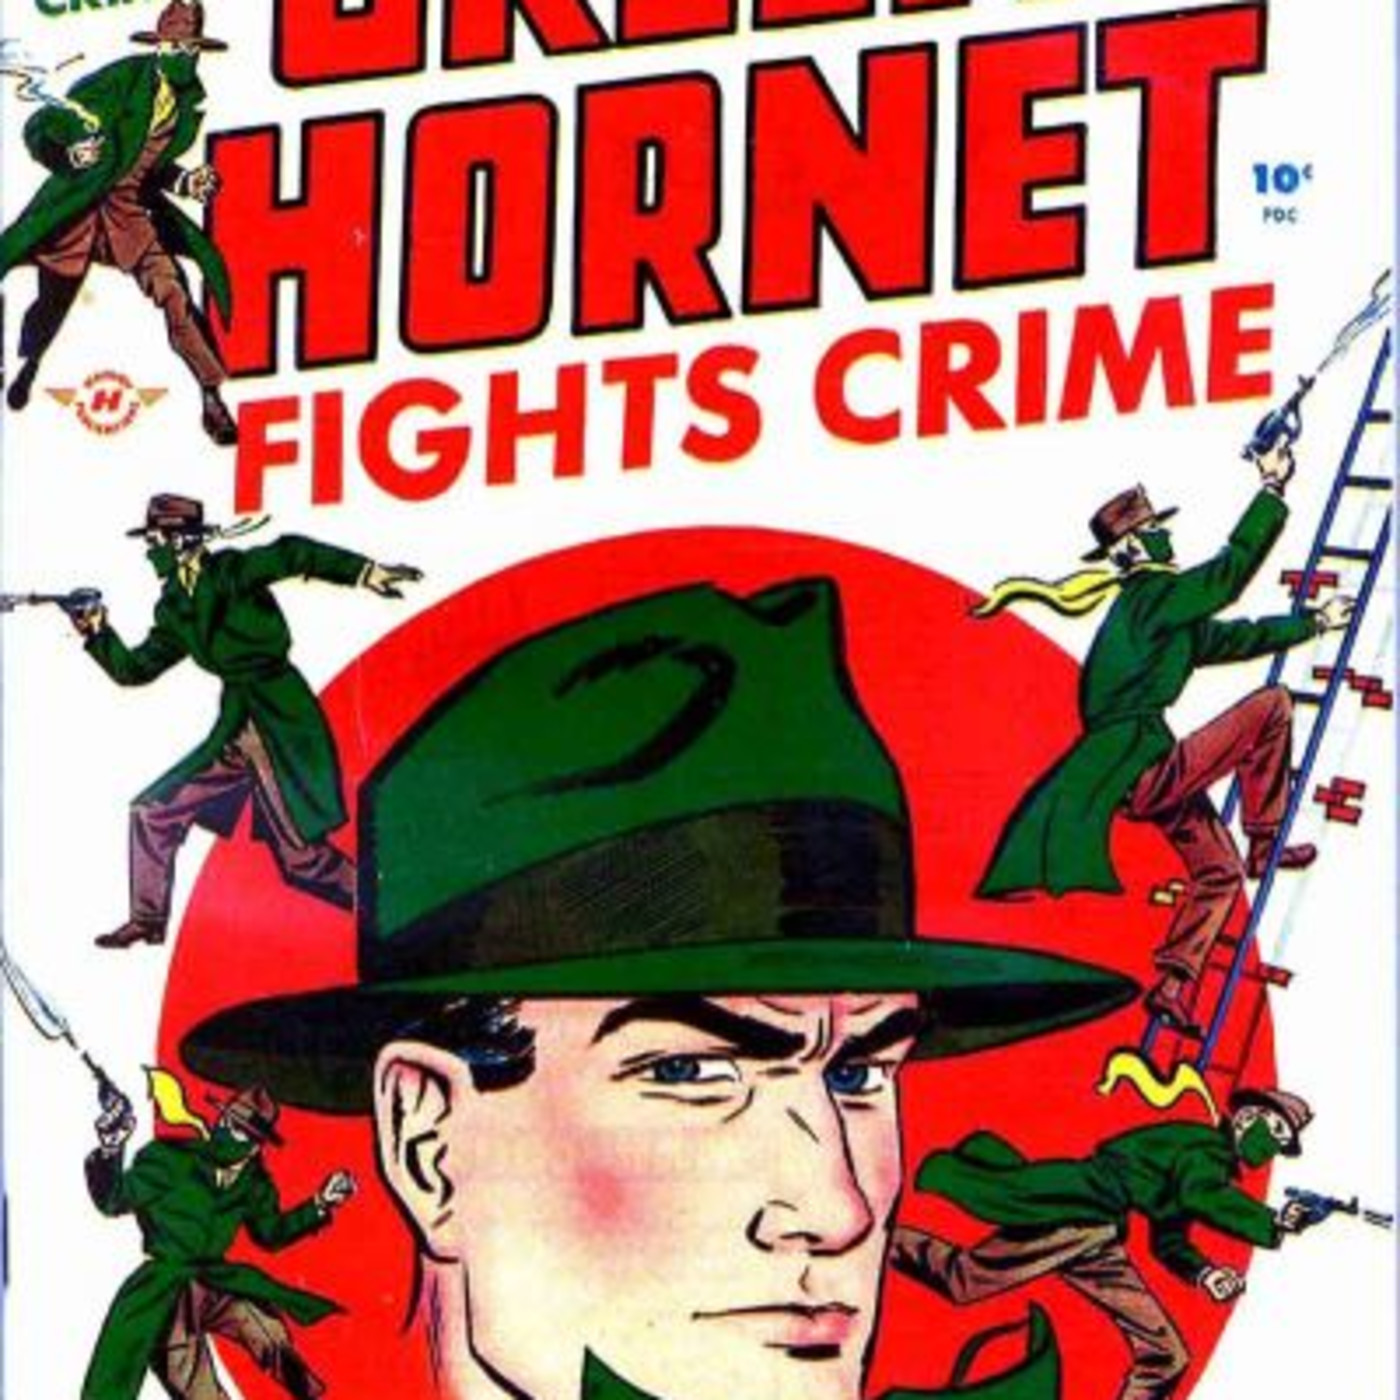 The Green Hornet - 00 - 451115TheKatzWithNineLives